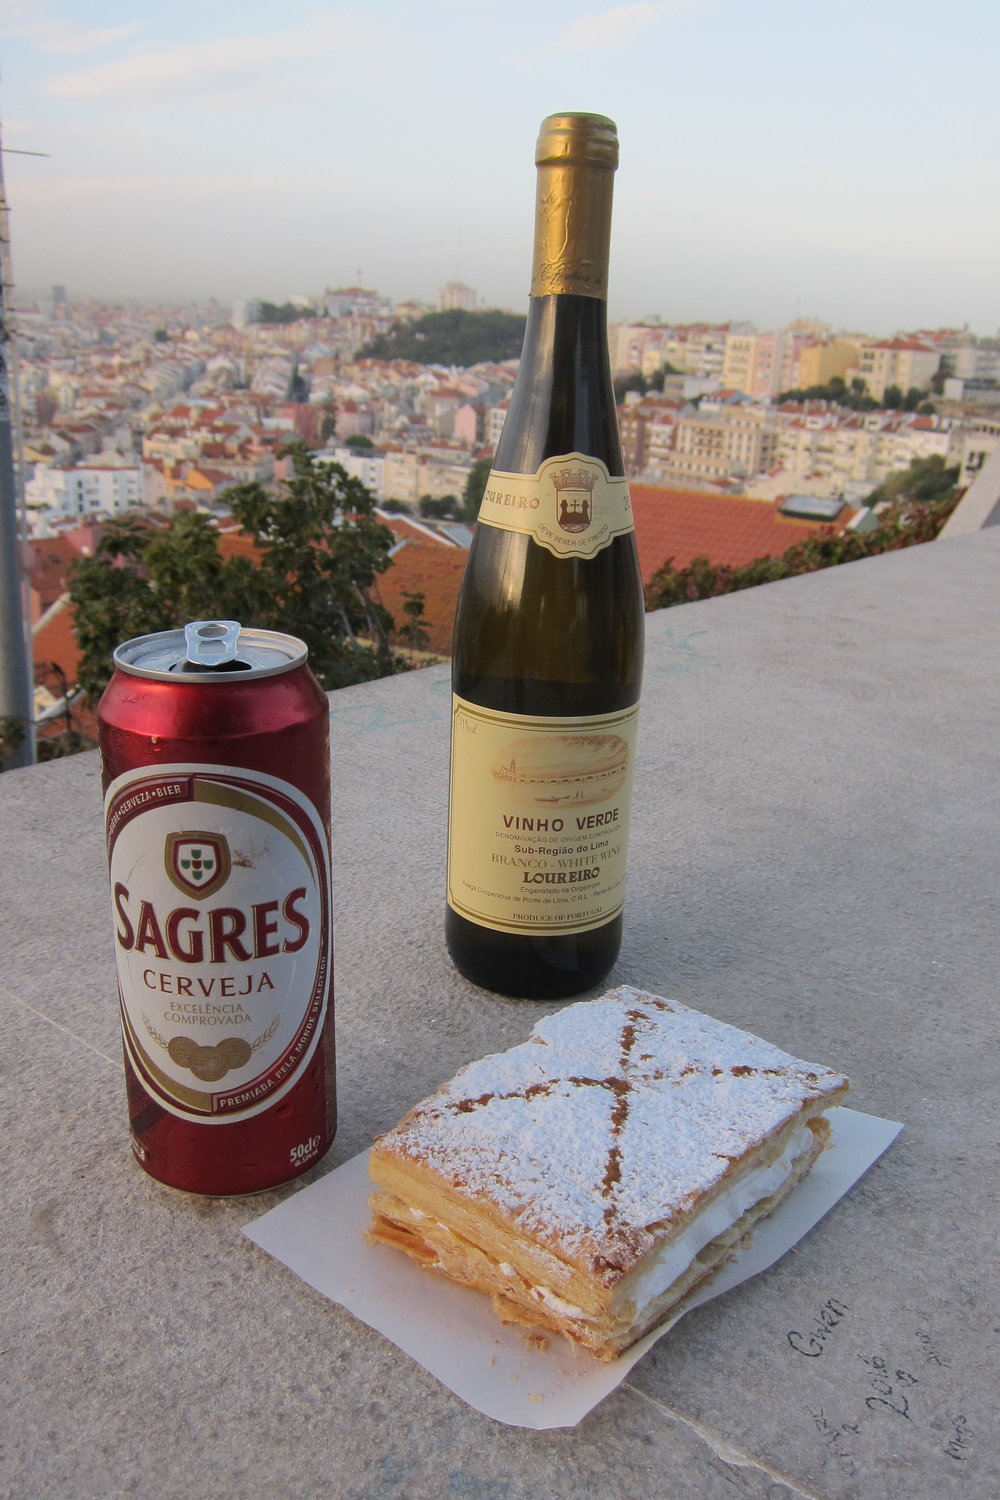 Sagres beer, vinho verde and delicious pastries pretty much sum up my favorite food experiences in Lisbon.